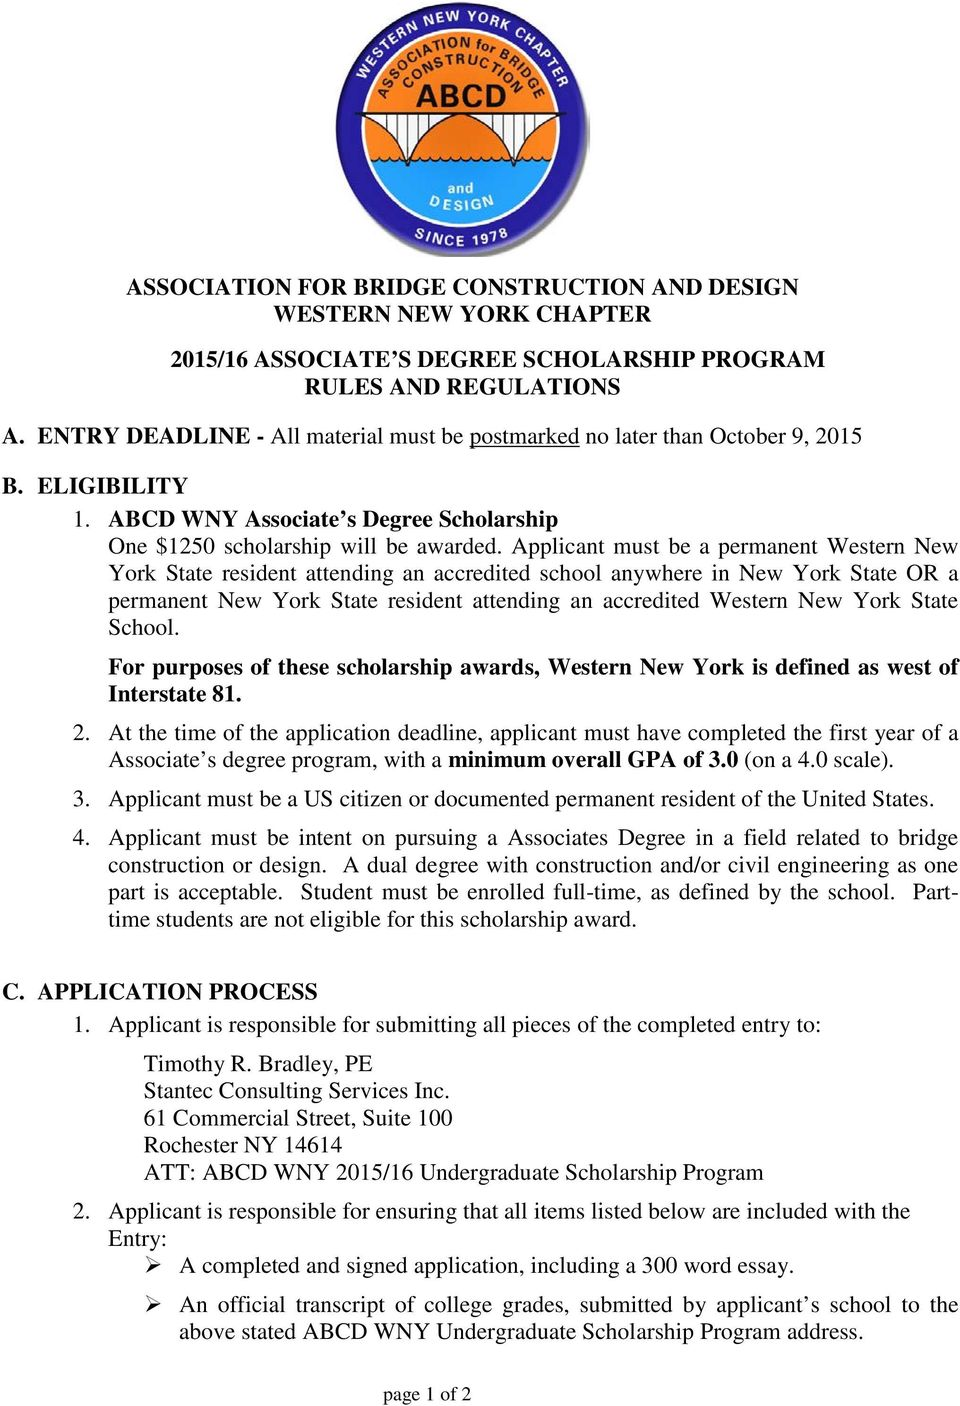 Applicant must be a permanent Western New York State resident attending an accredited school anywhere in New York State OR a permanent New York State resident attending an accredited Western New York